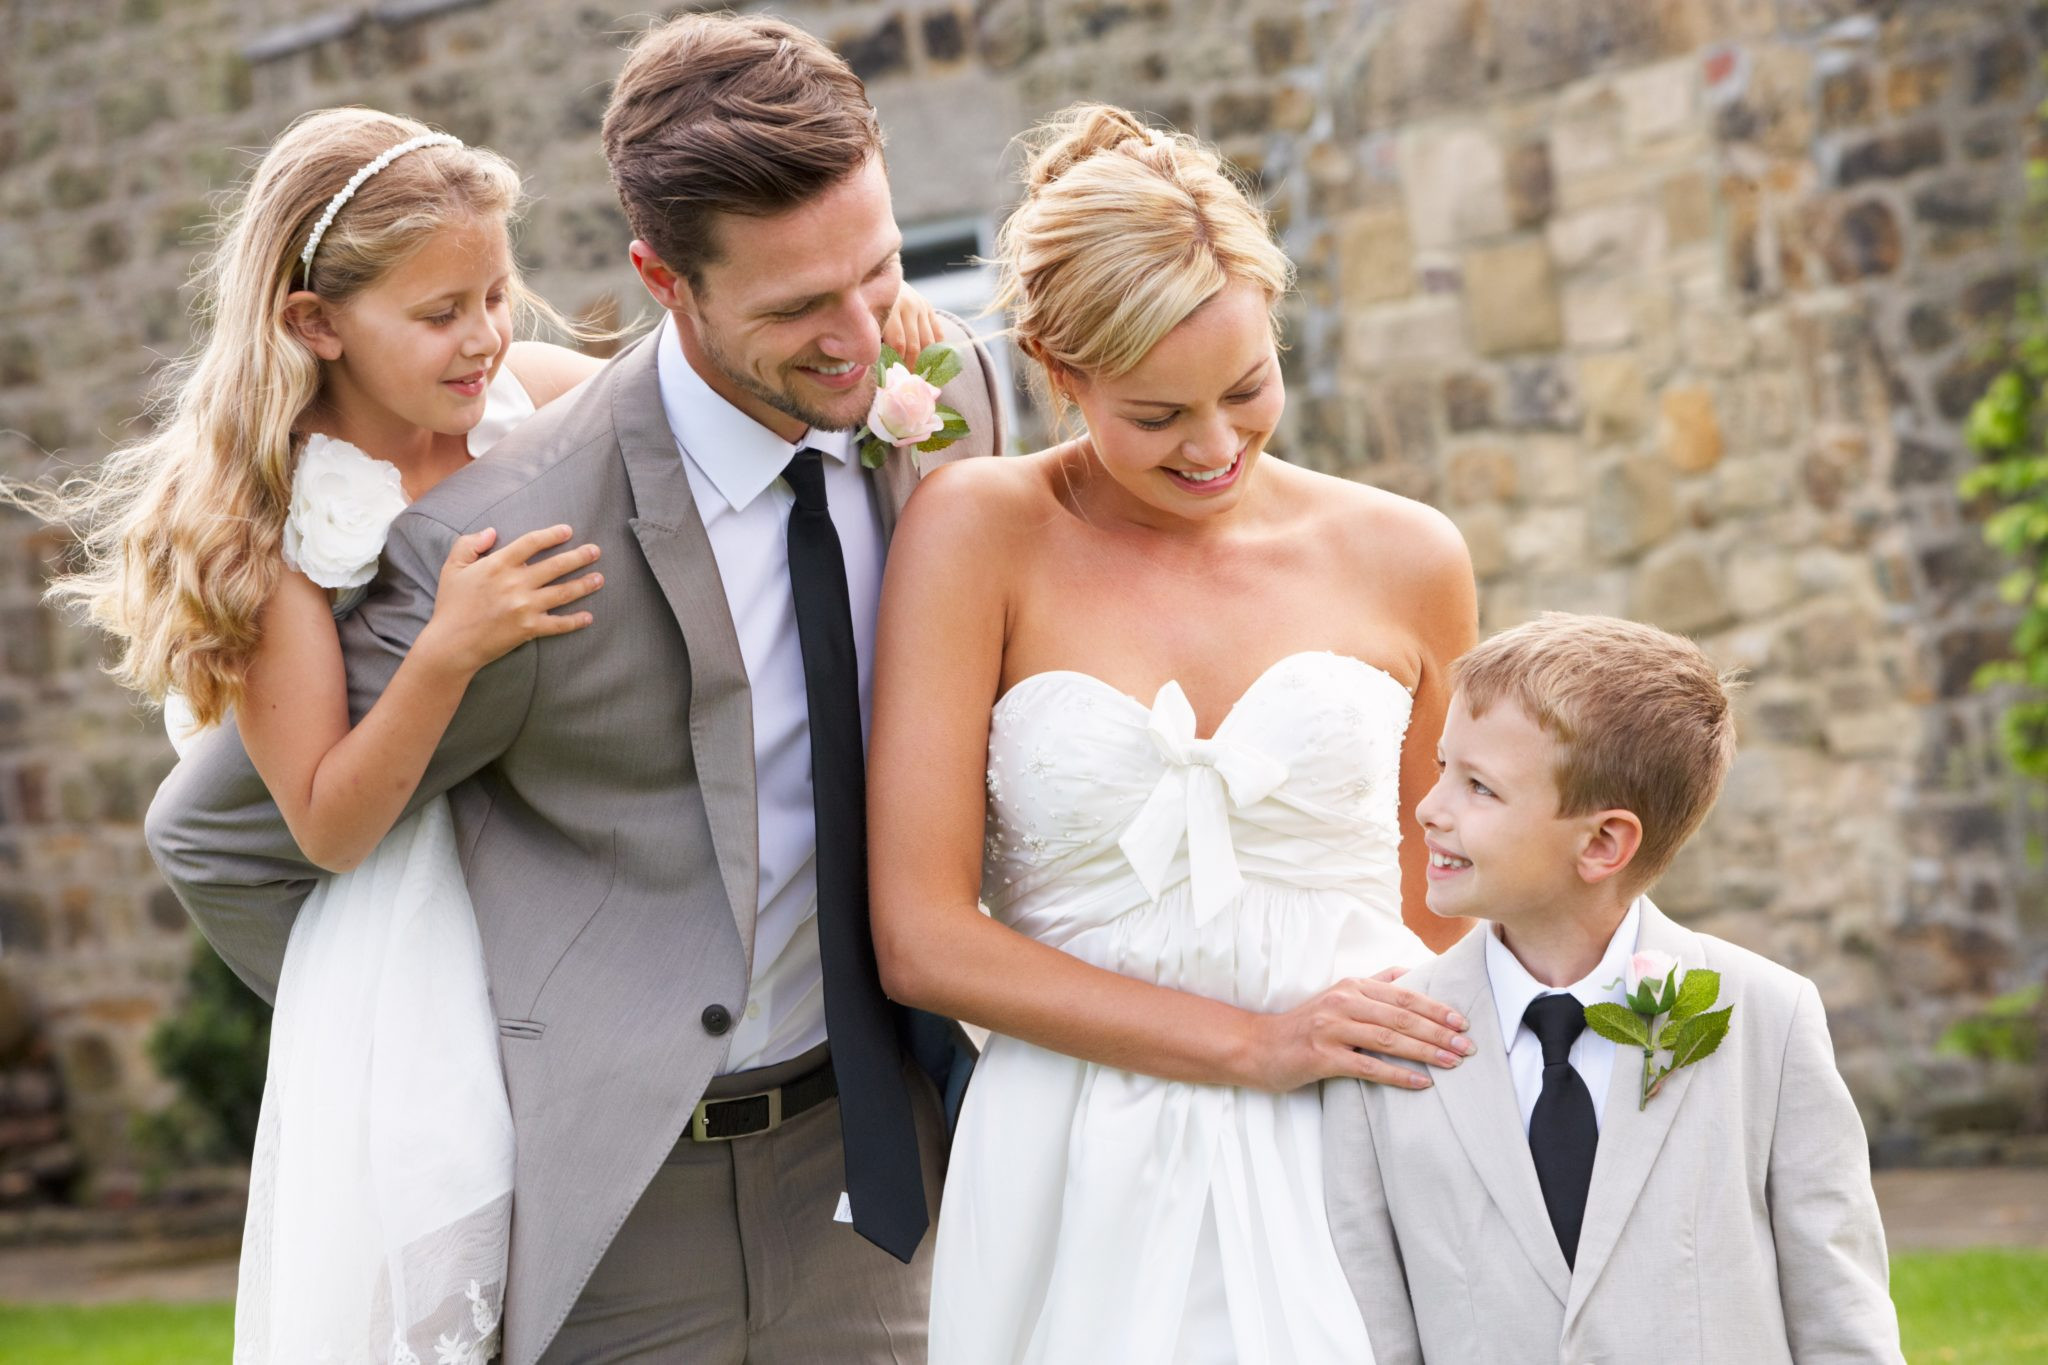 Wedding Vows With Children  VOWS TO YOUR NEW CHILDREN It s Never Too Late Marriage